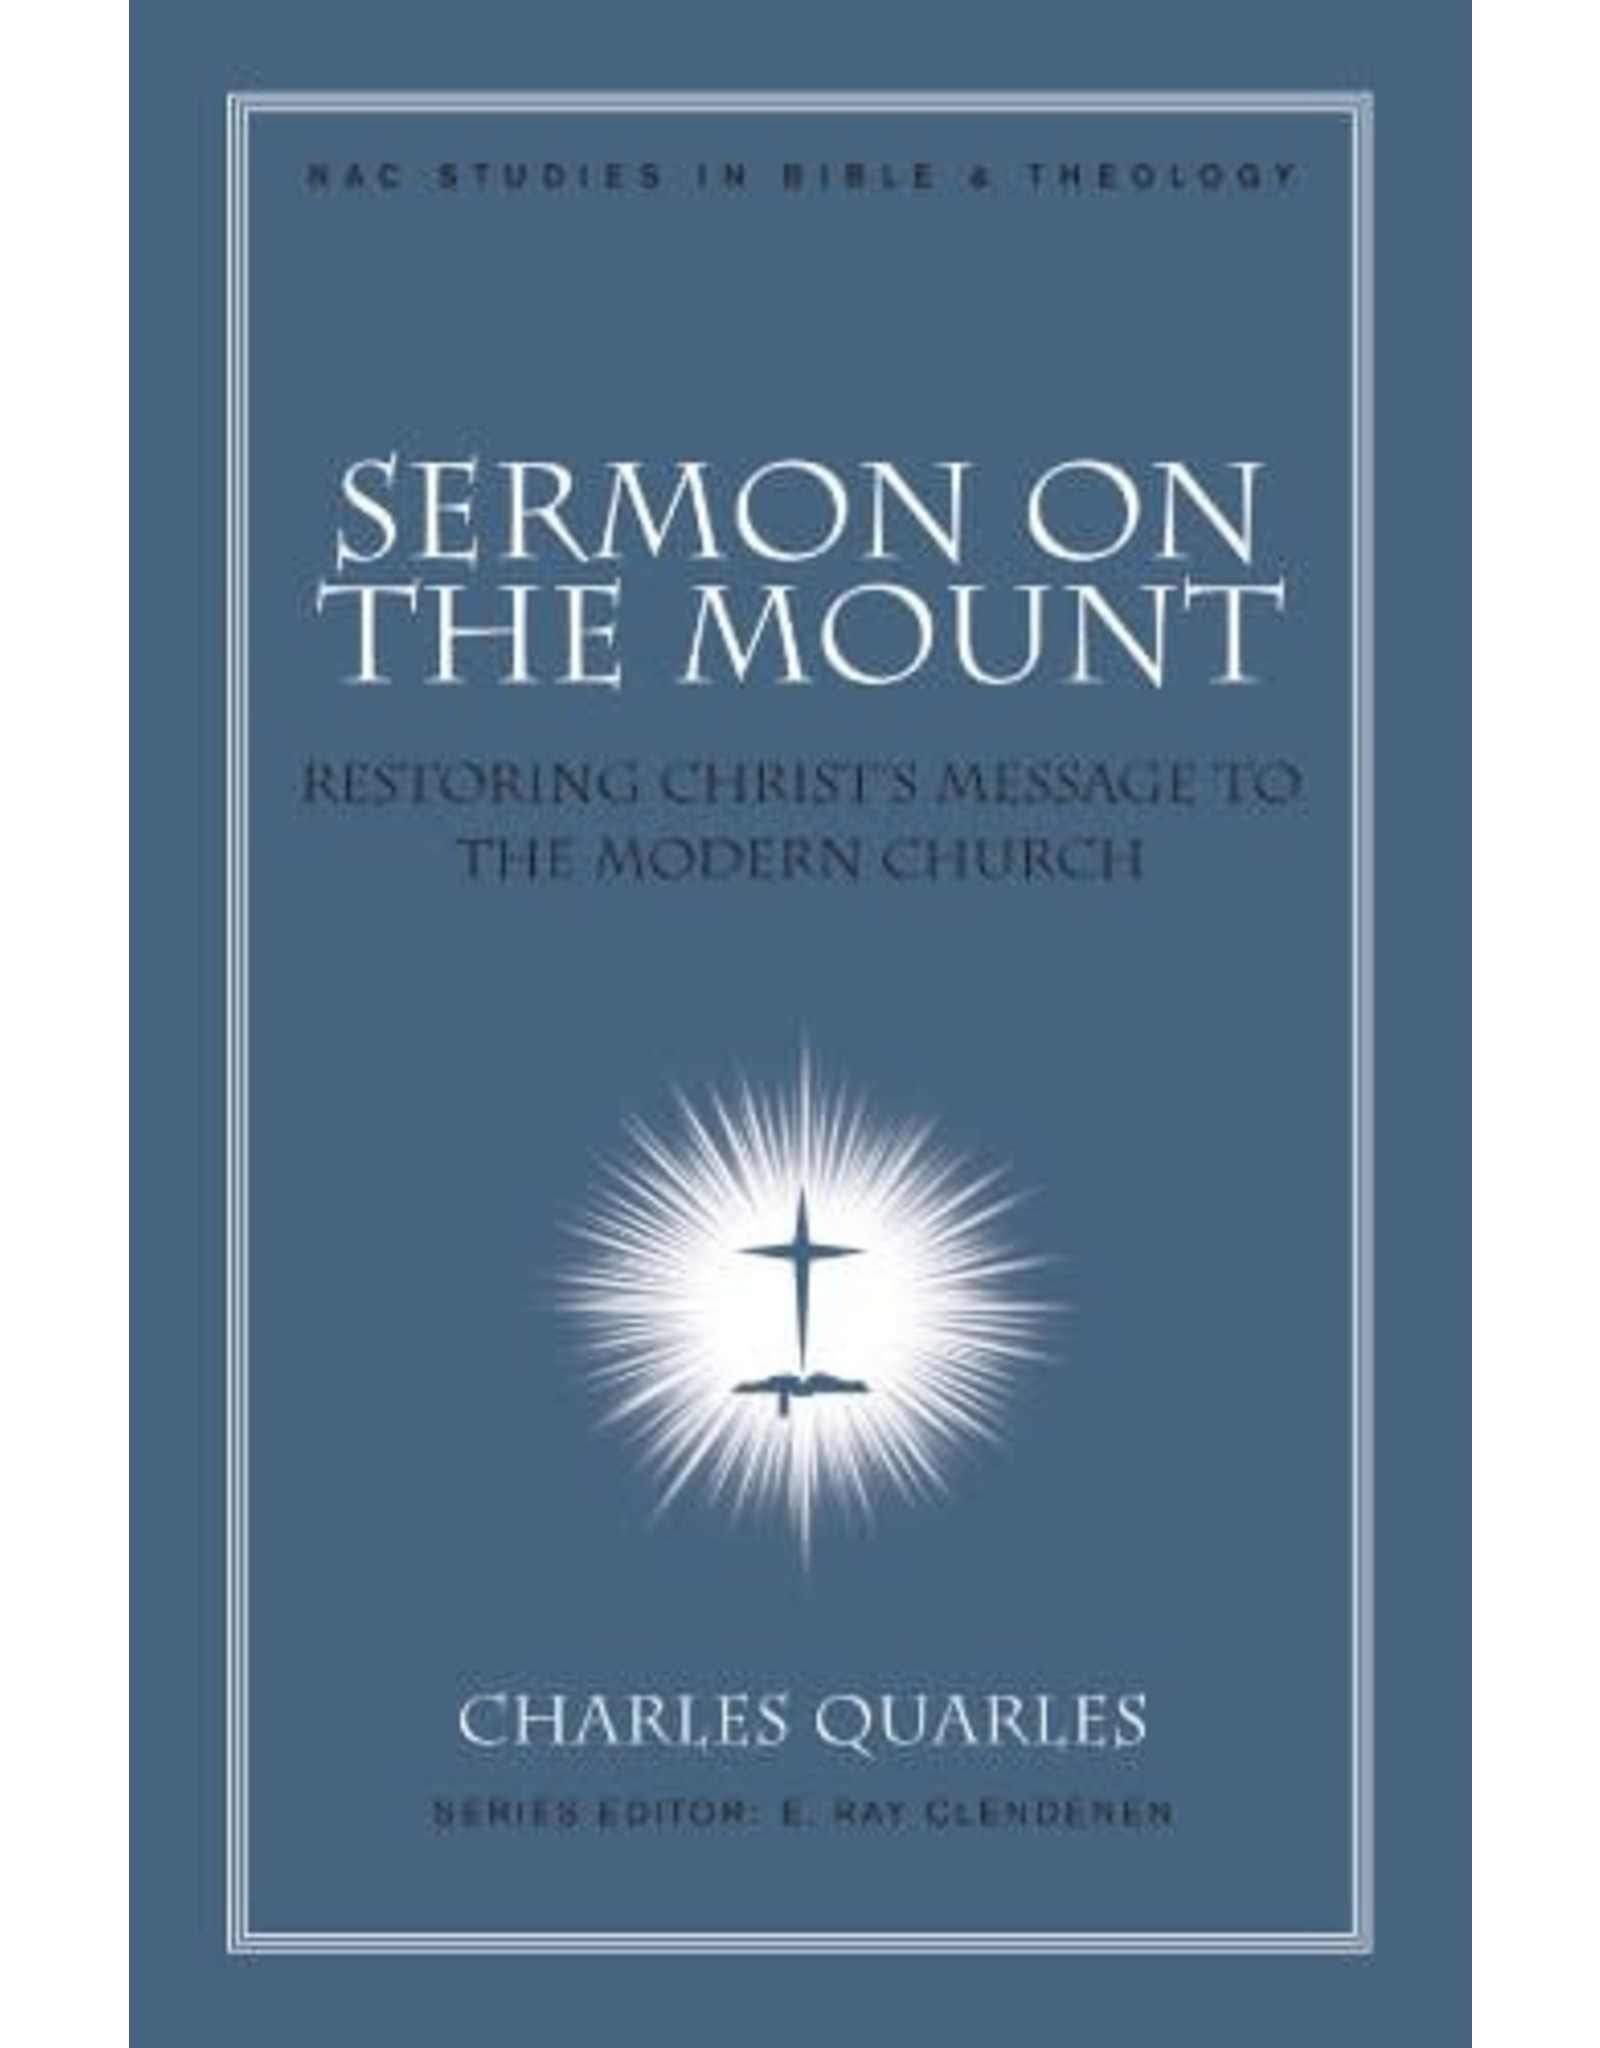 Quarles Sermon On The Mount: Restoring Christ's Message to the Modern Church